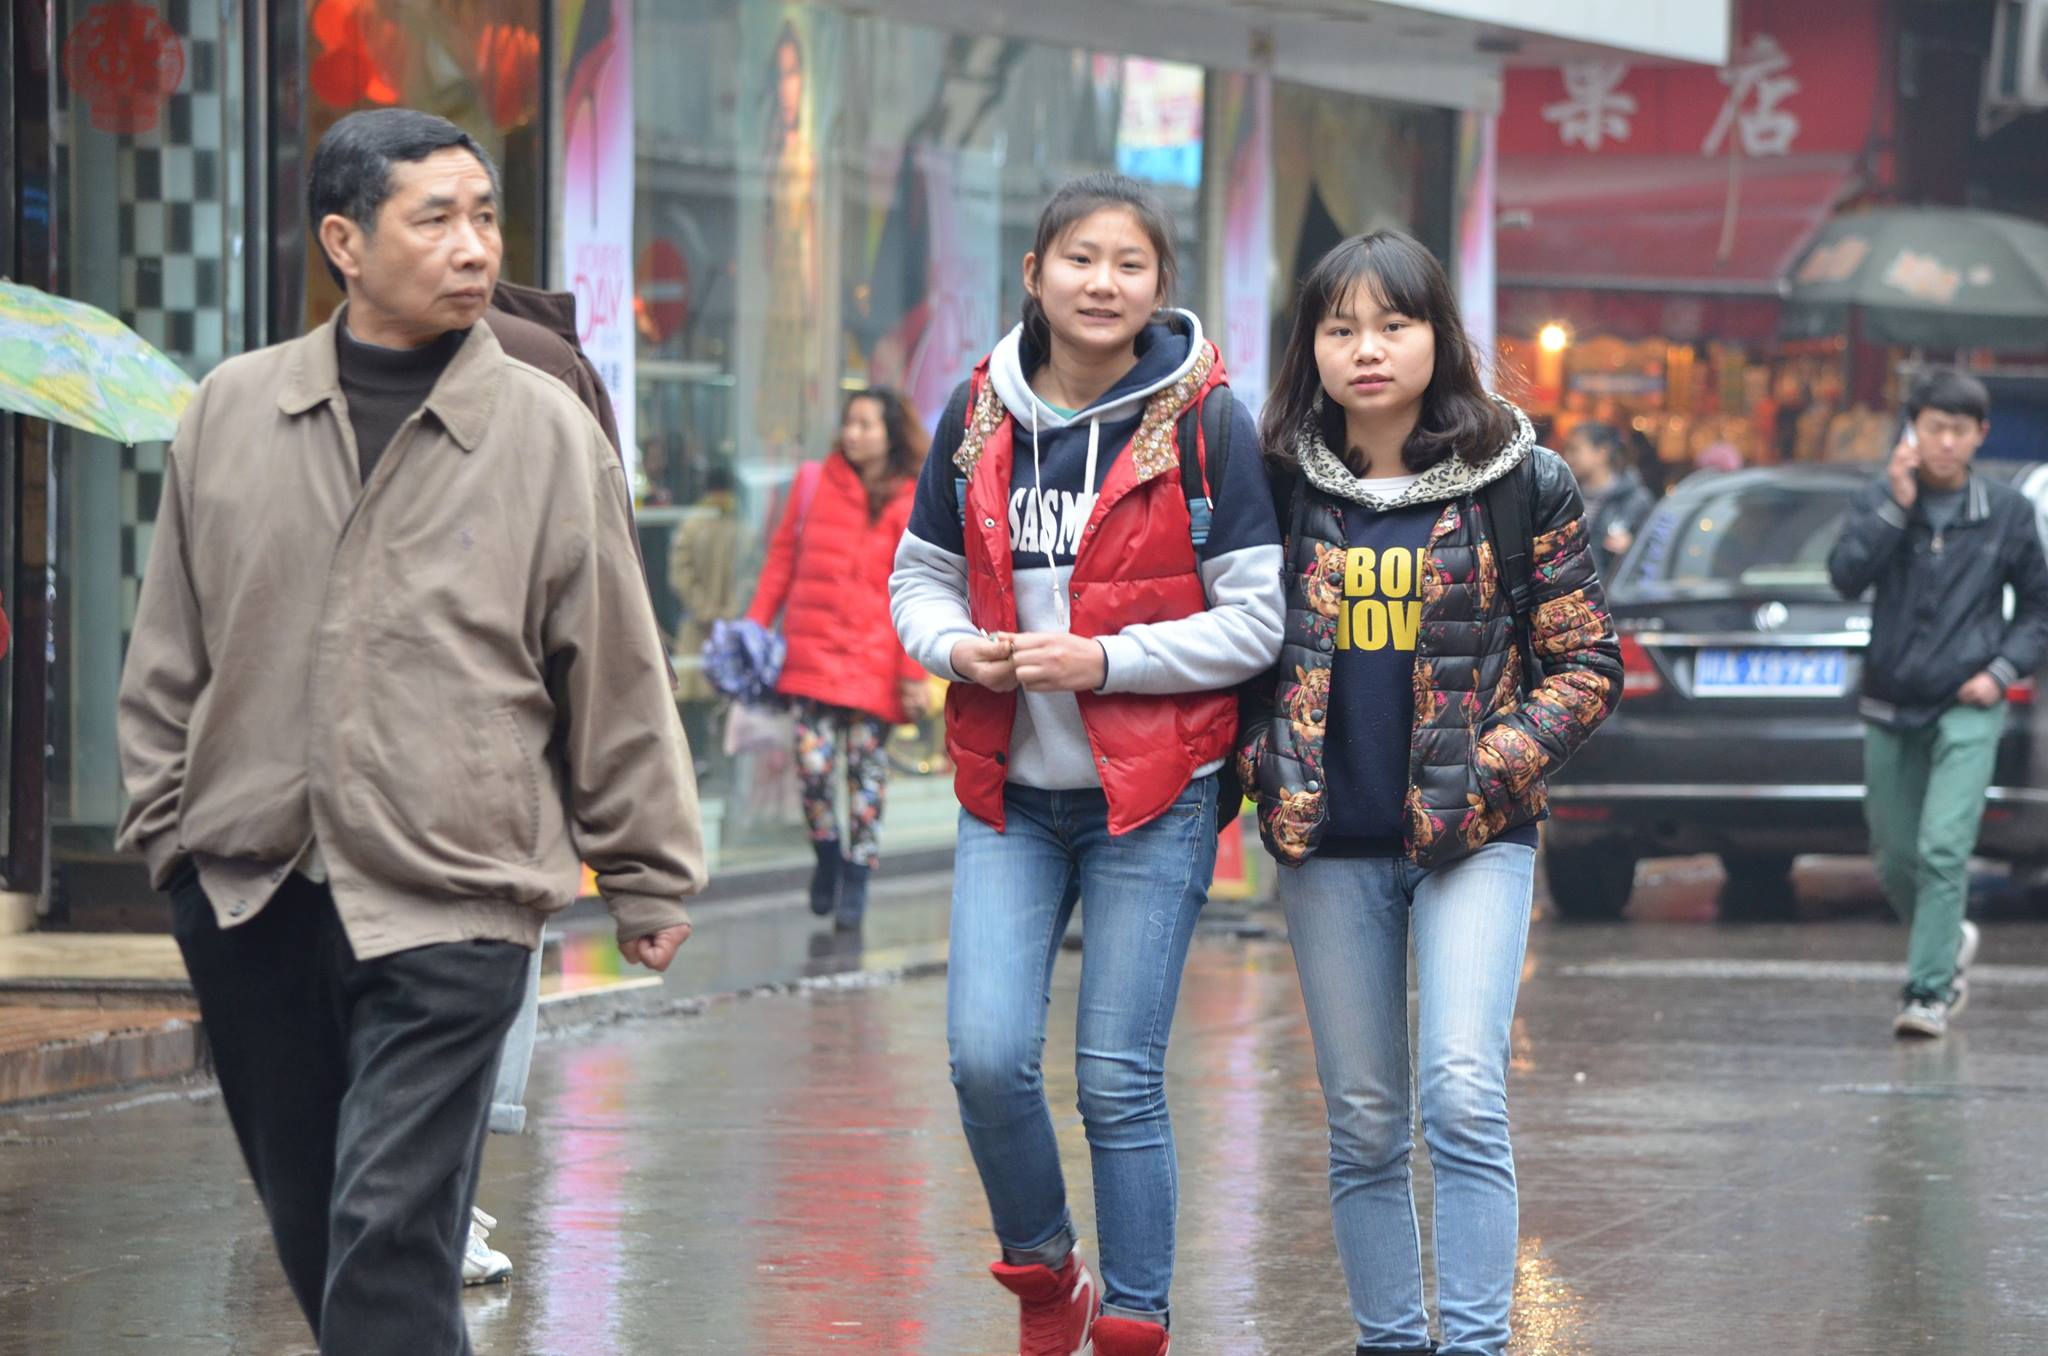 Church growth in China on the rise